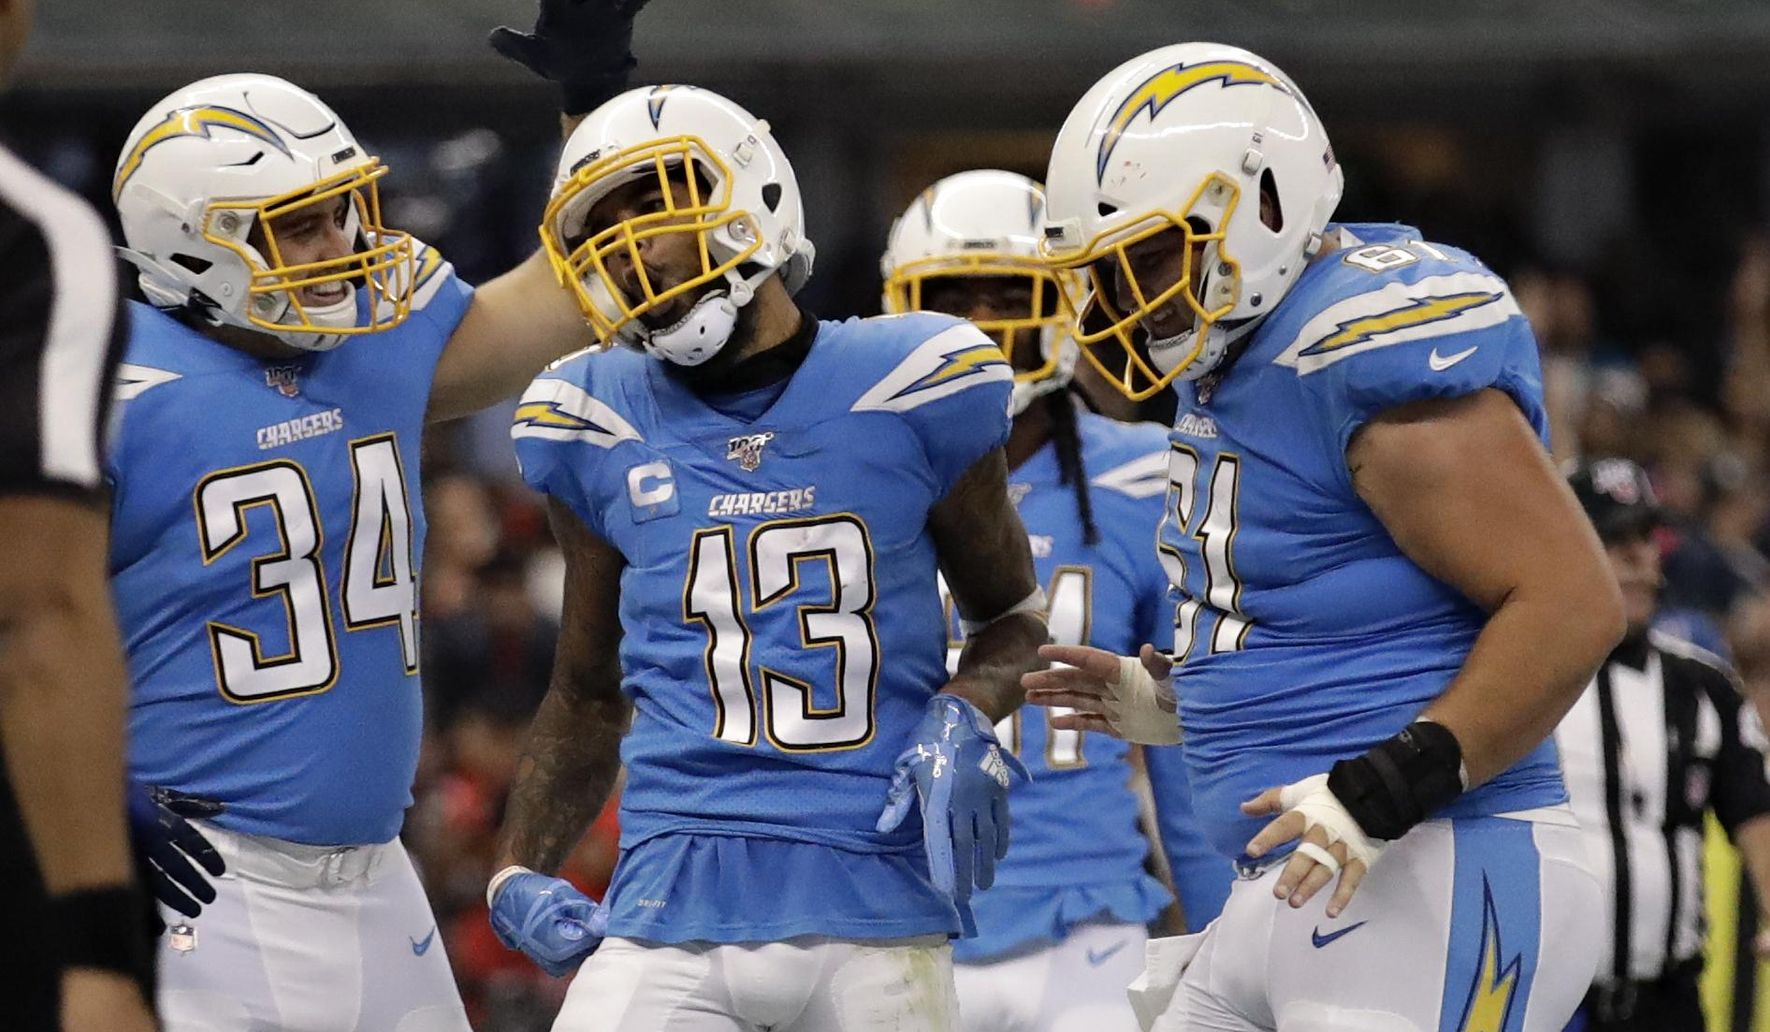 Mexico_chiefs_chargers_football_94230_c0-79-1893-1182_s1770x1032